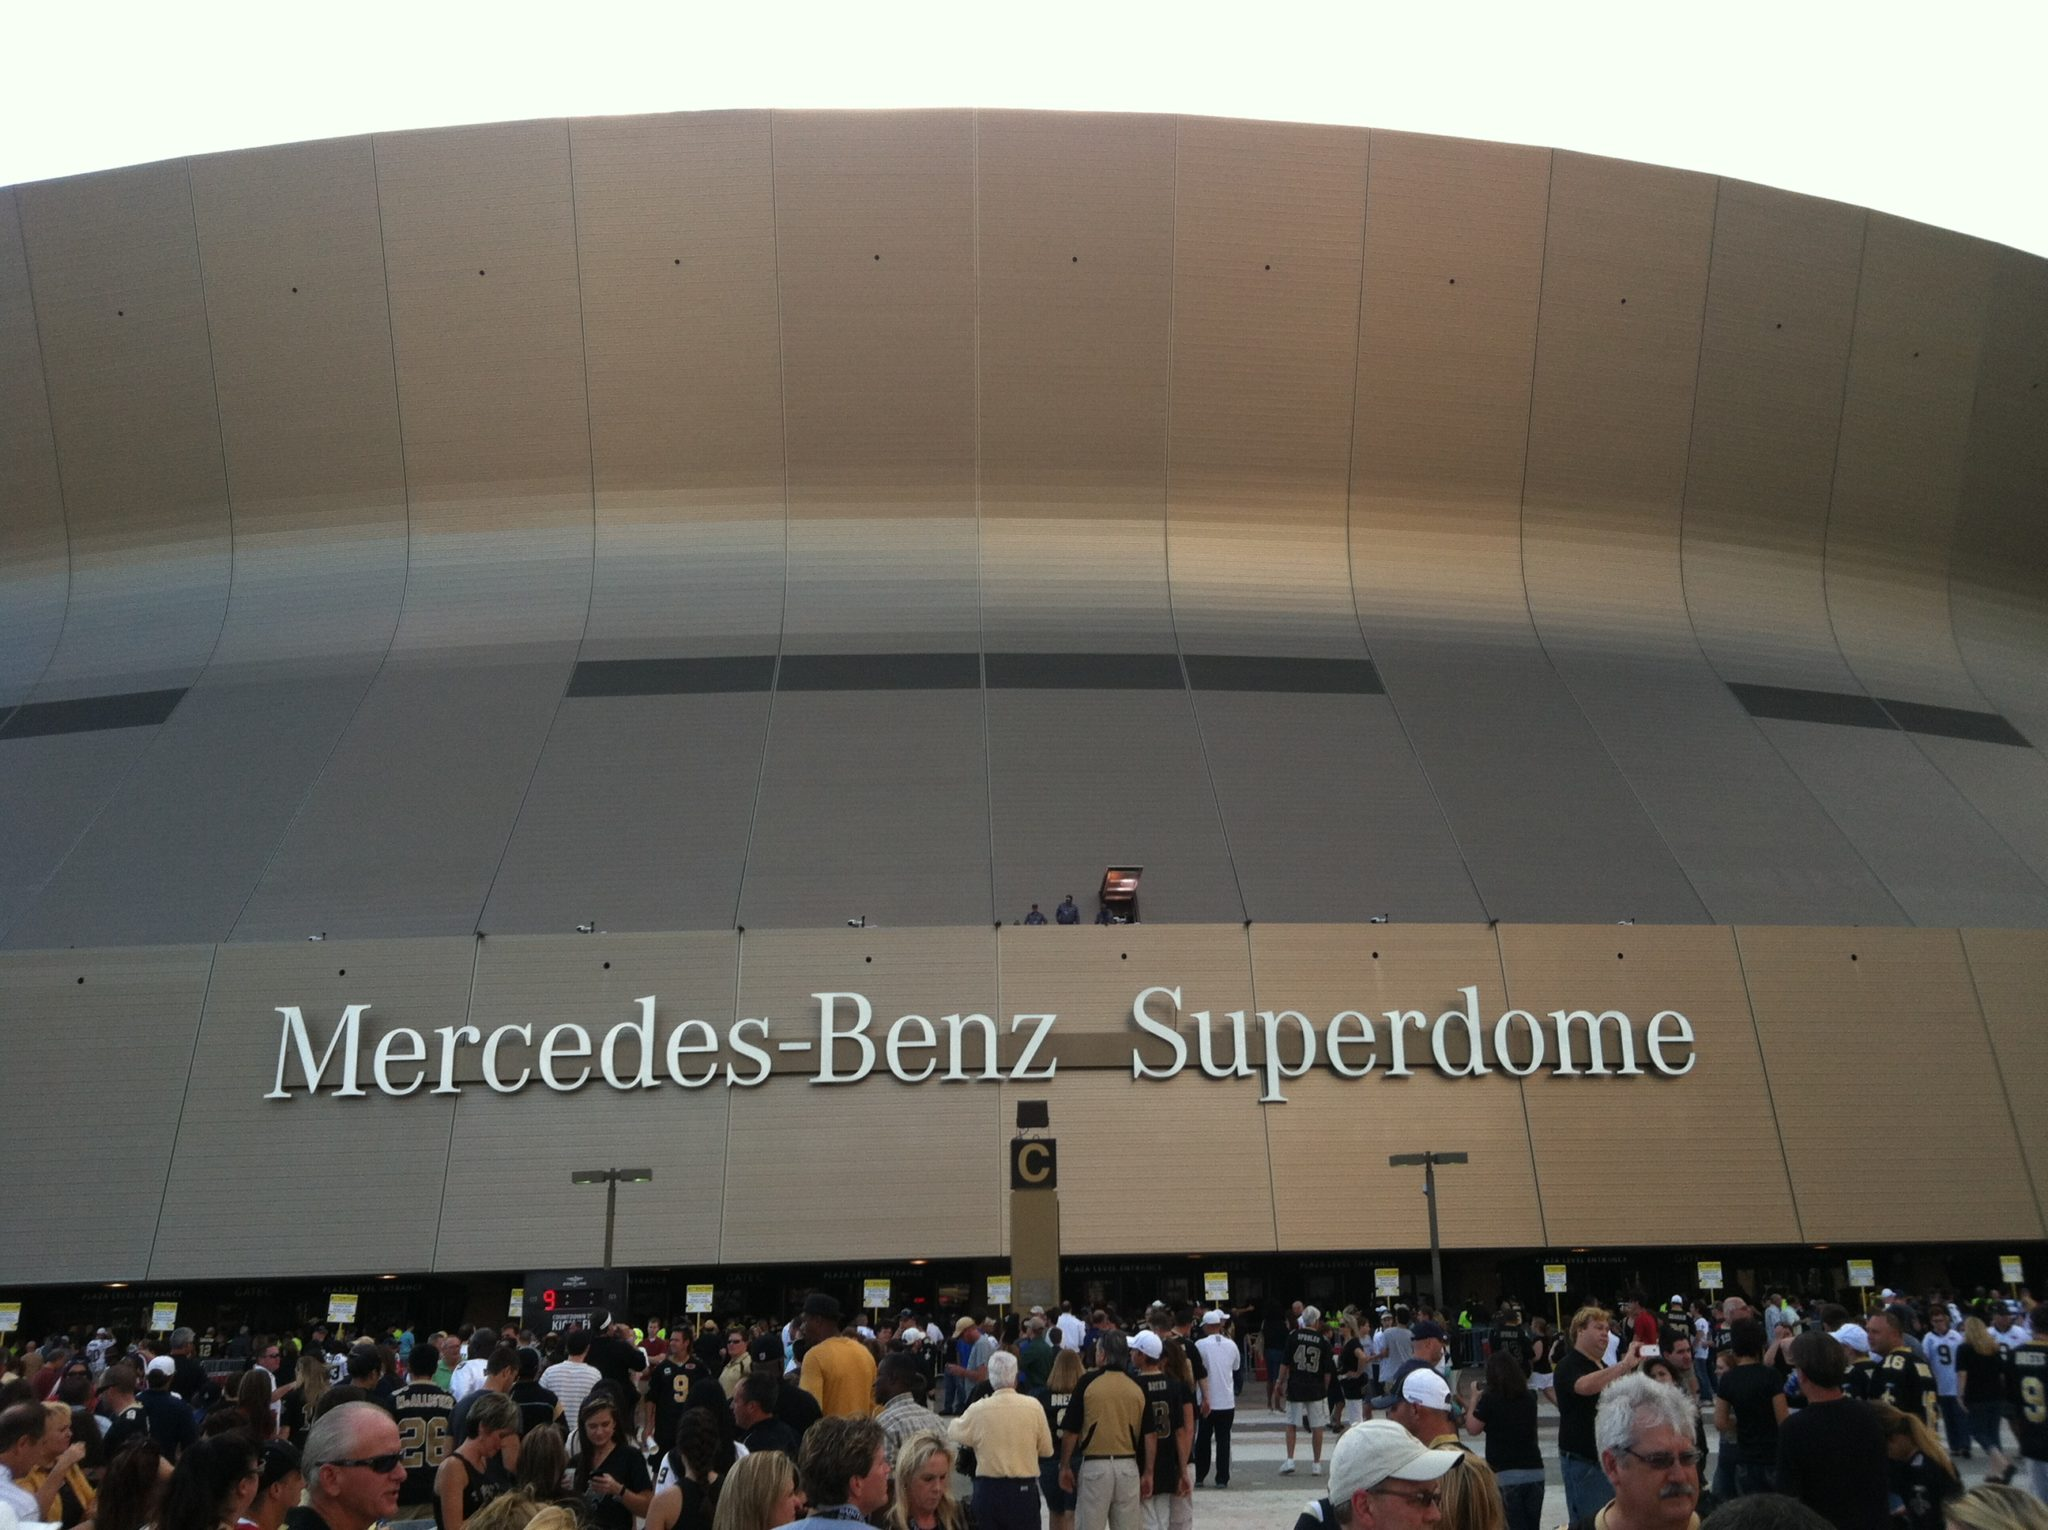 Super bowl xlvii in new orleans bienville house hotel for Hotels near the mercedes benz superdome